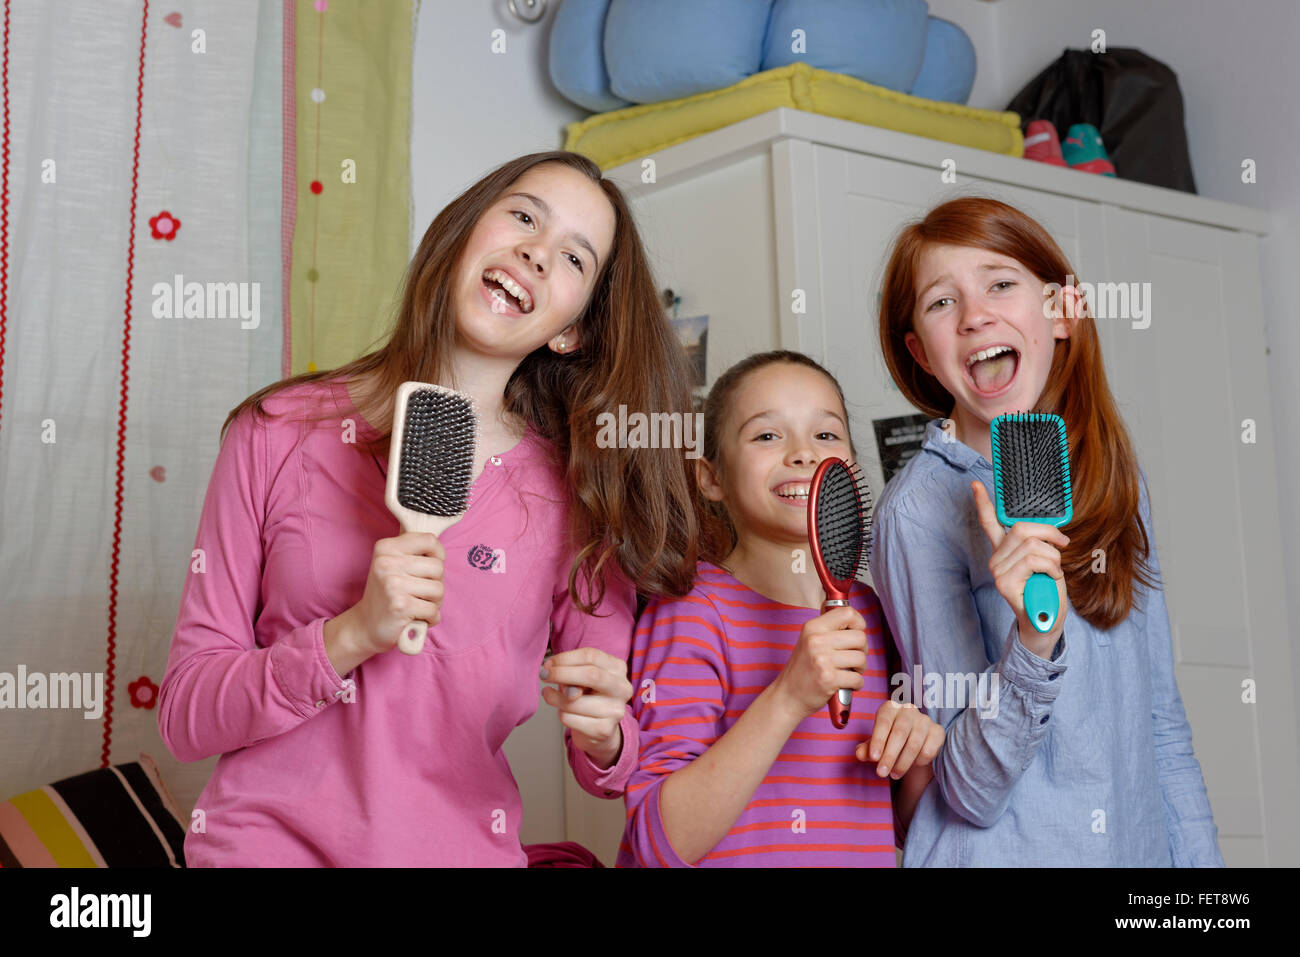 Girls, children singing into hairbrush as microphone, Germany - Stock Image